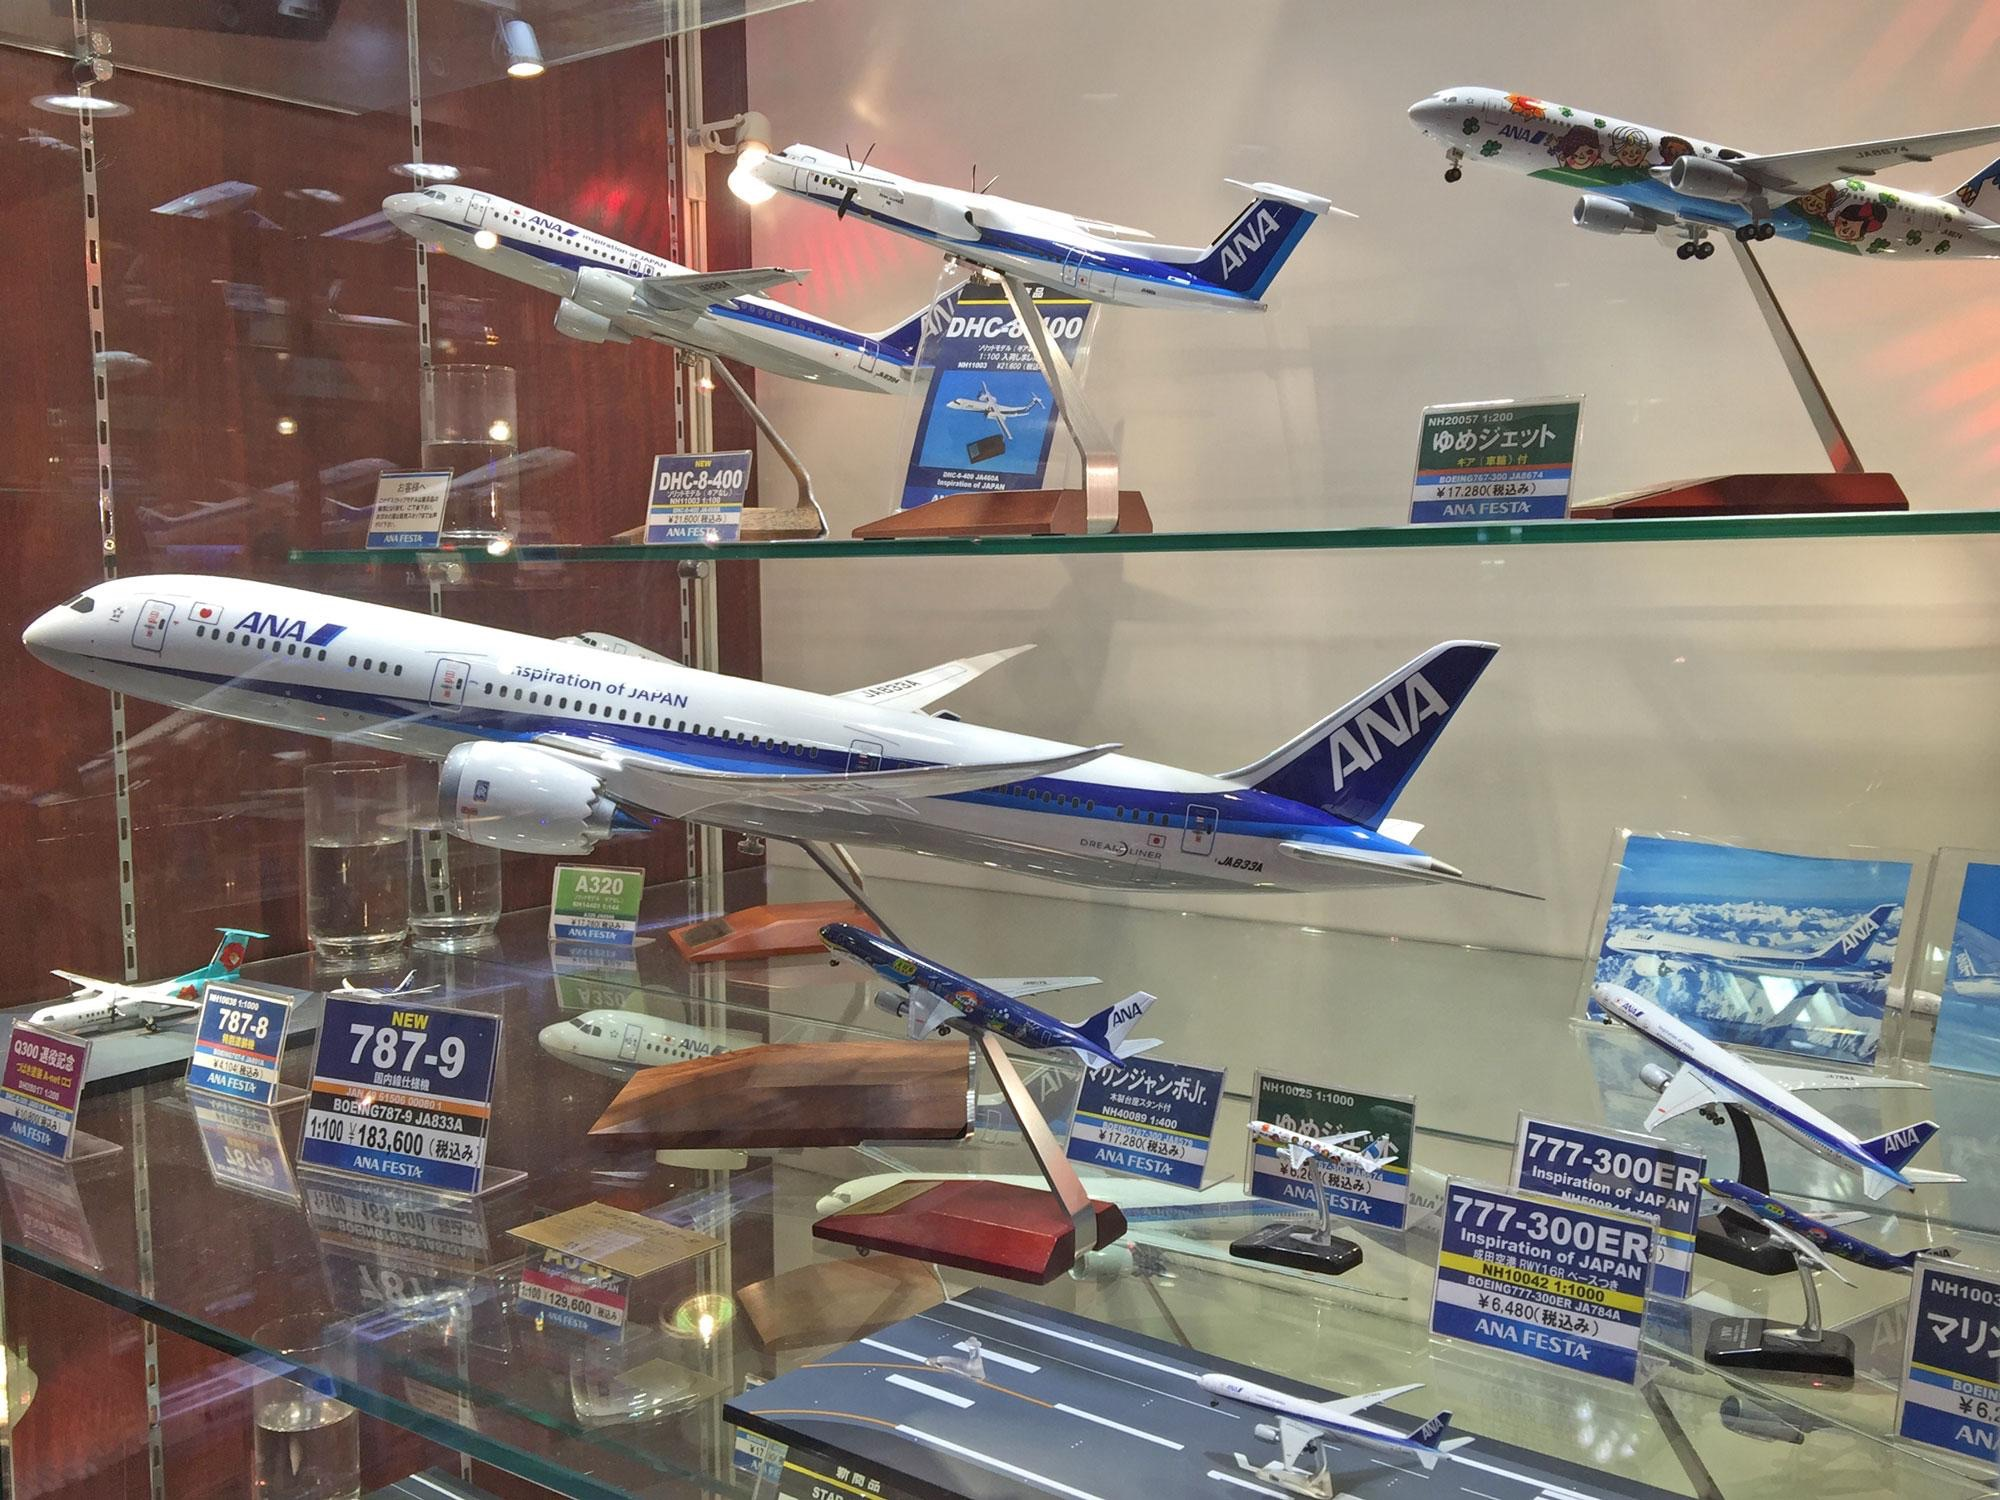 ANA FESTA shop at Haneda Airport loads of Pacmins: FULL REPORT with photos